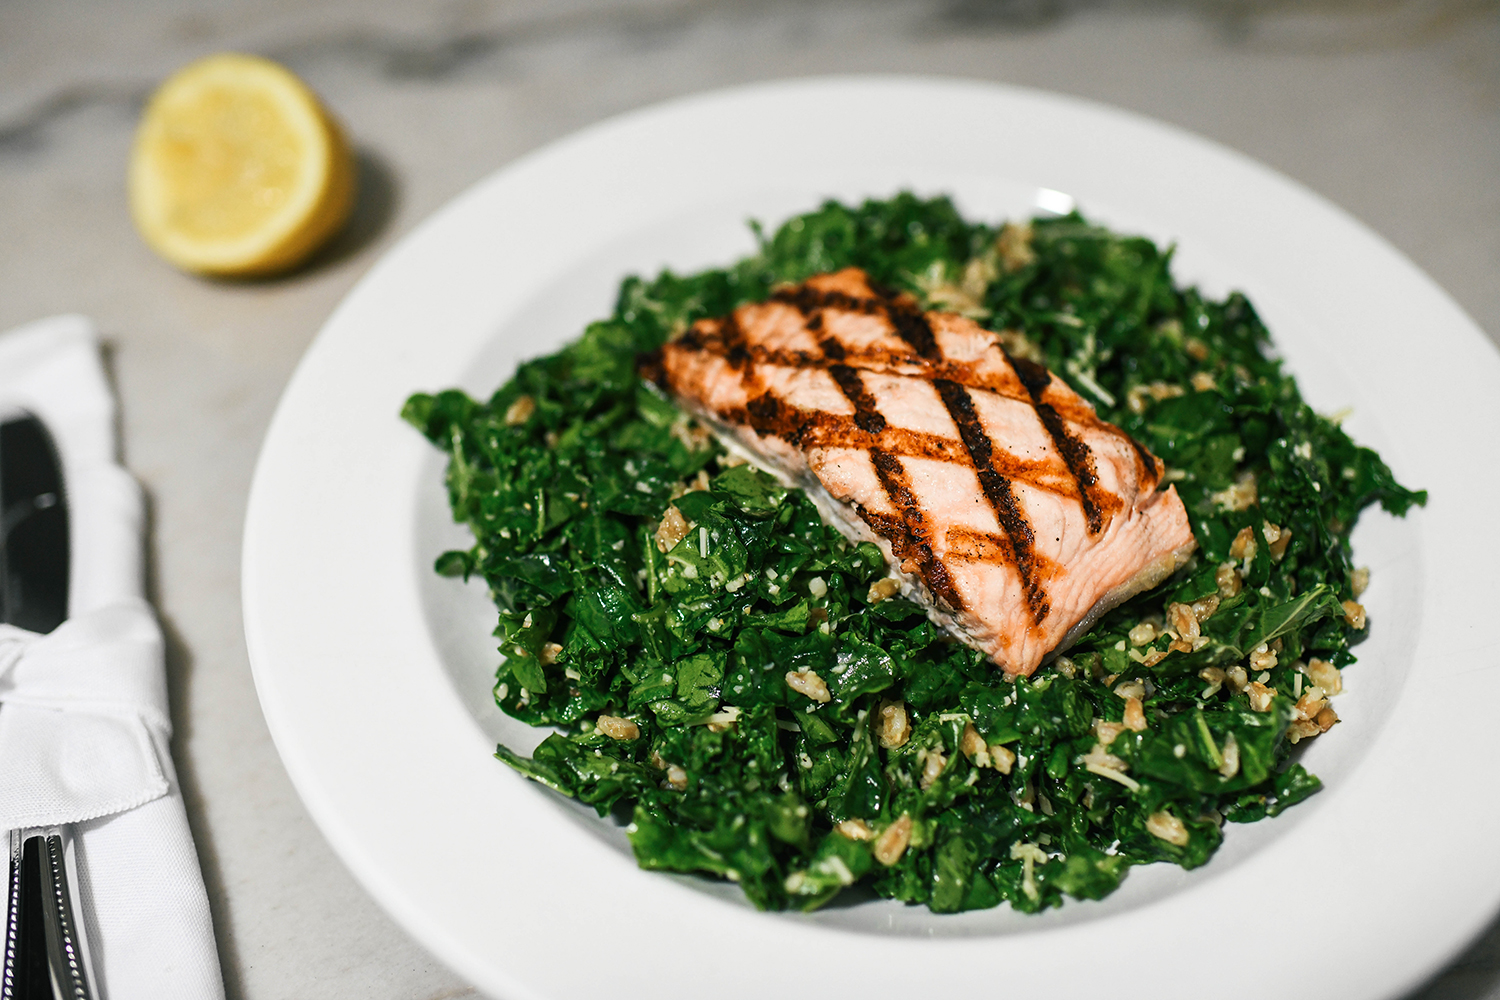 Grilled Salmon over Kale Salad with Farro